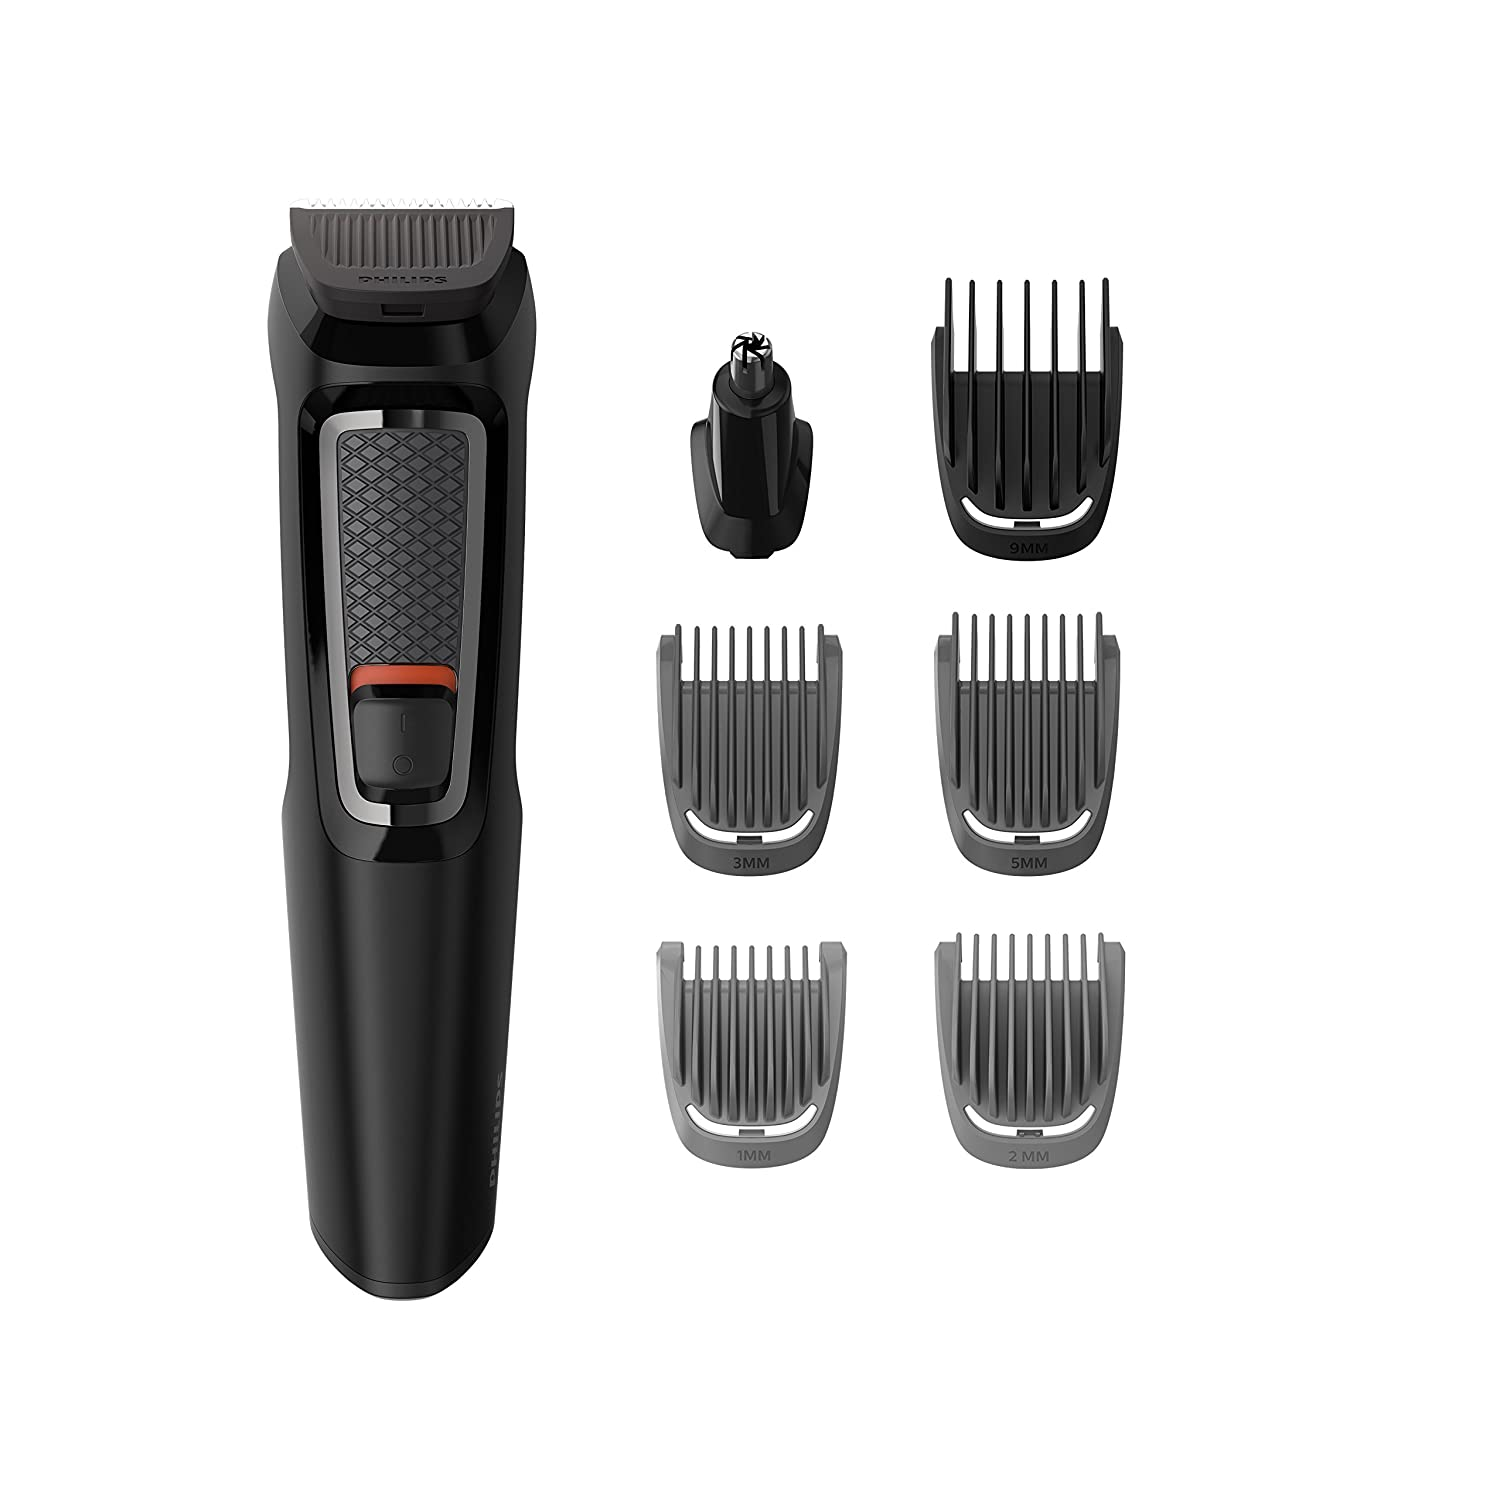 Philips Series 3000 7-in-1 Multi Grooming Kit for Beard   Hair with Nose  Trimmer Attachment - MG3720 13 66db0d3b7d5b